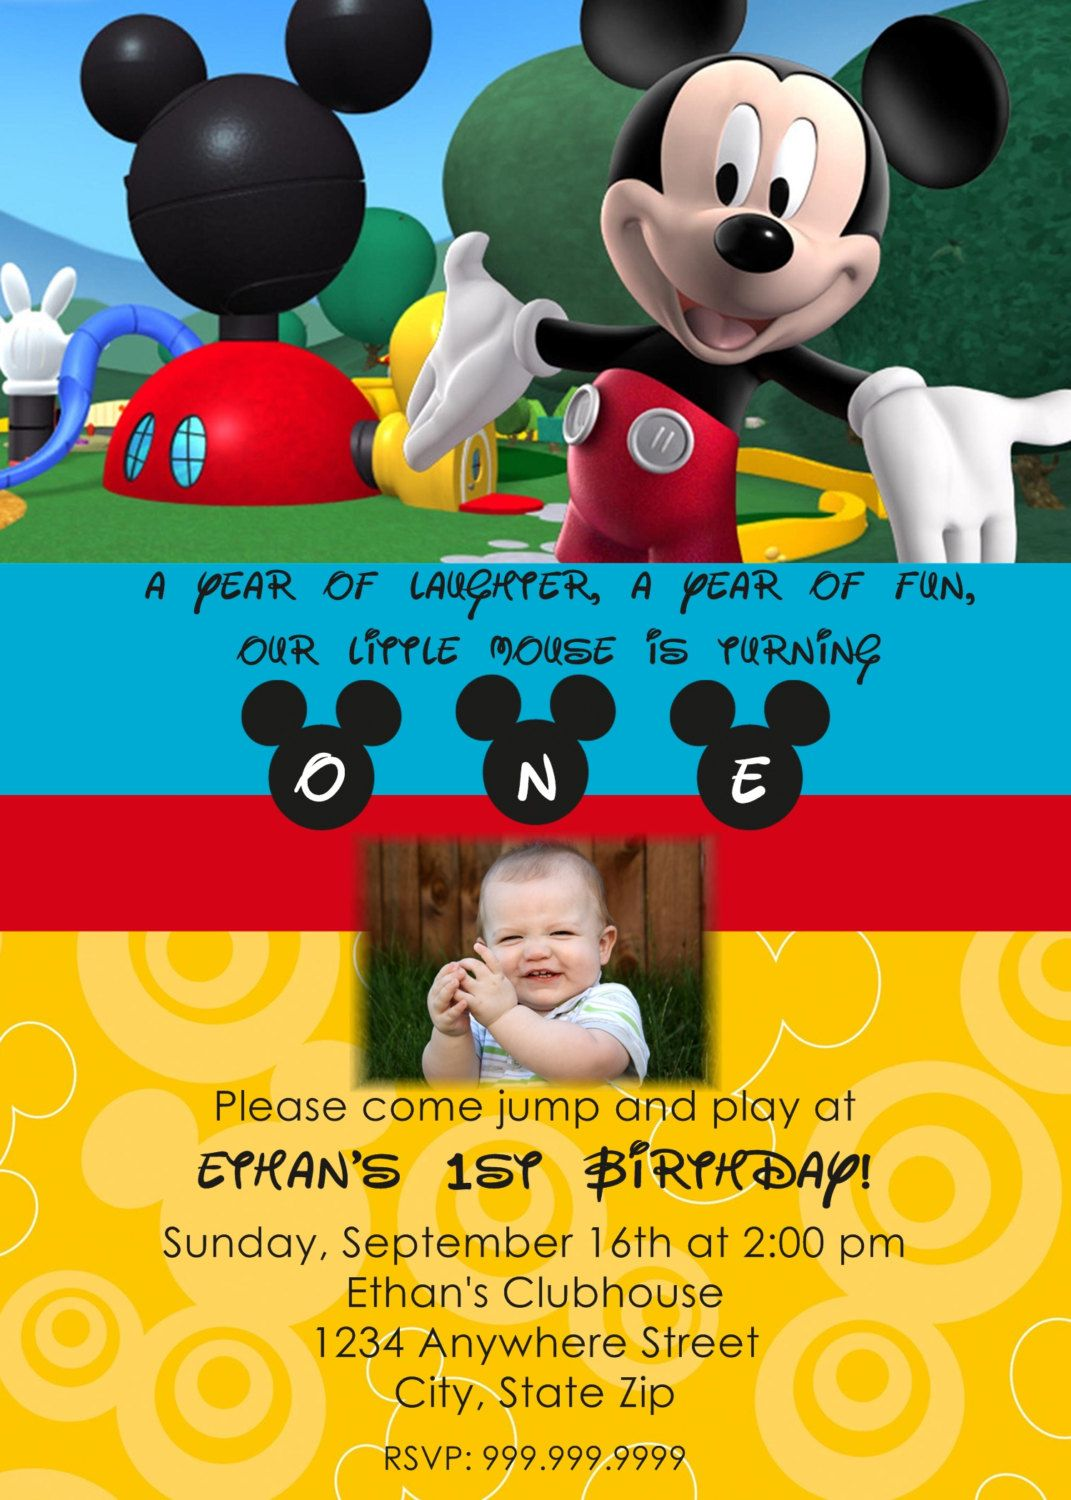 mickey mouse cards printable mickey mouse birthday cards mickey mouse clubhouse printable invitations template for your party nice party invitation template birthday invitation idea